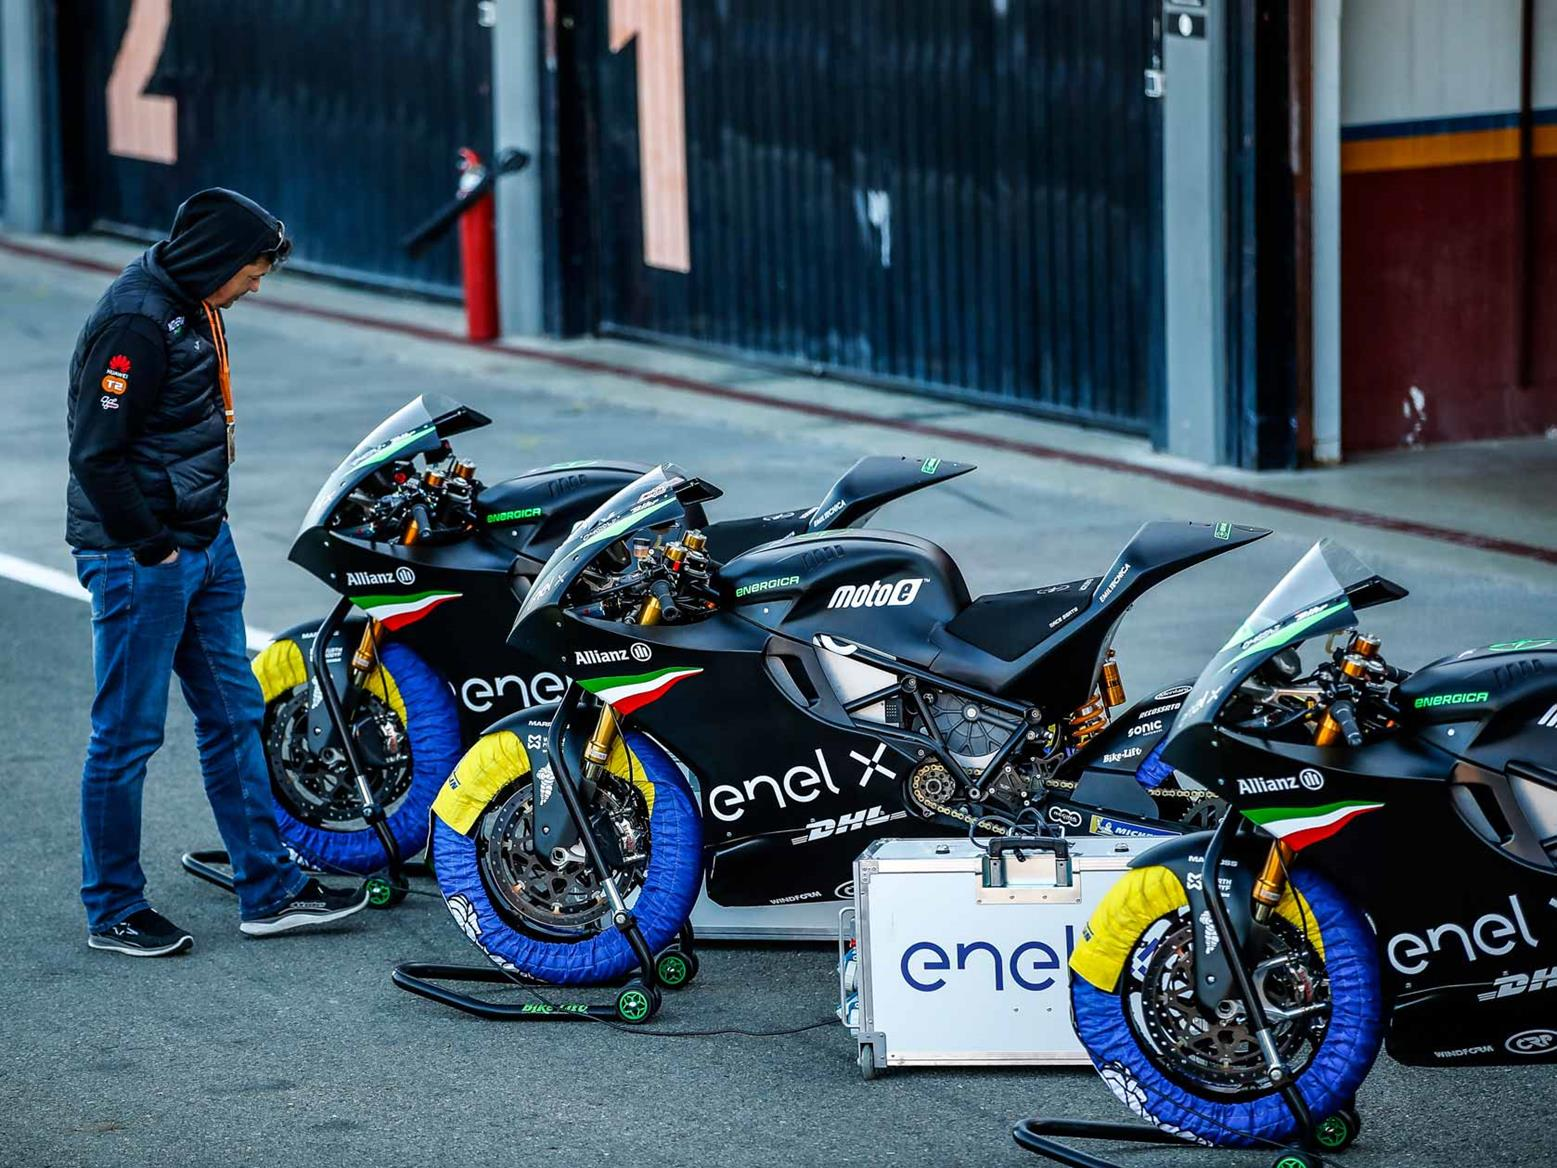 Bikes take around 45 minutes to fast charge in the pits